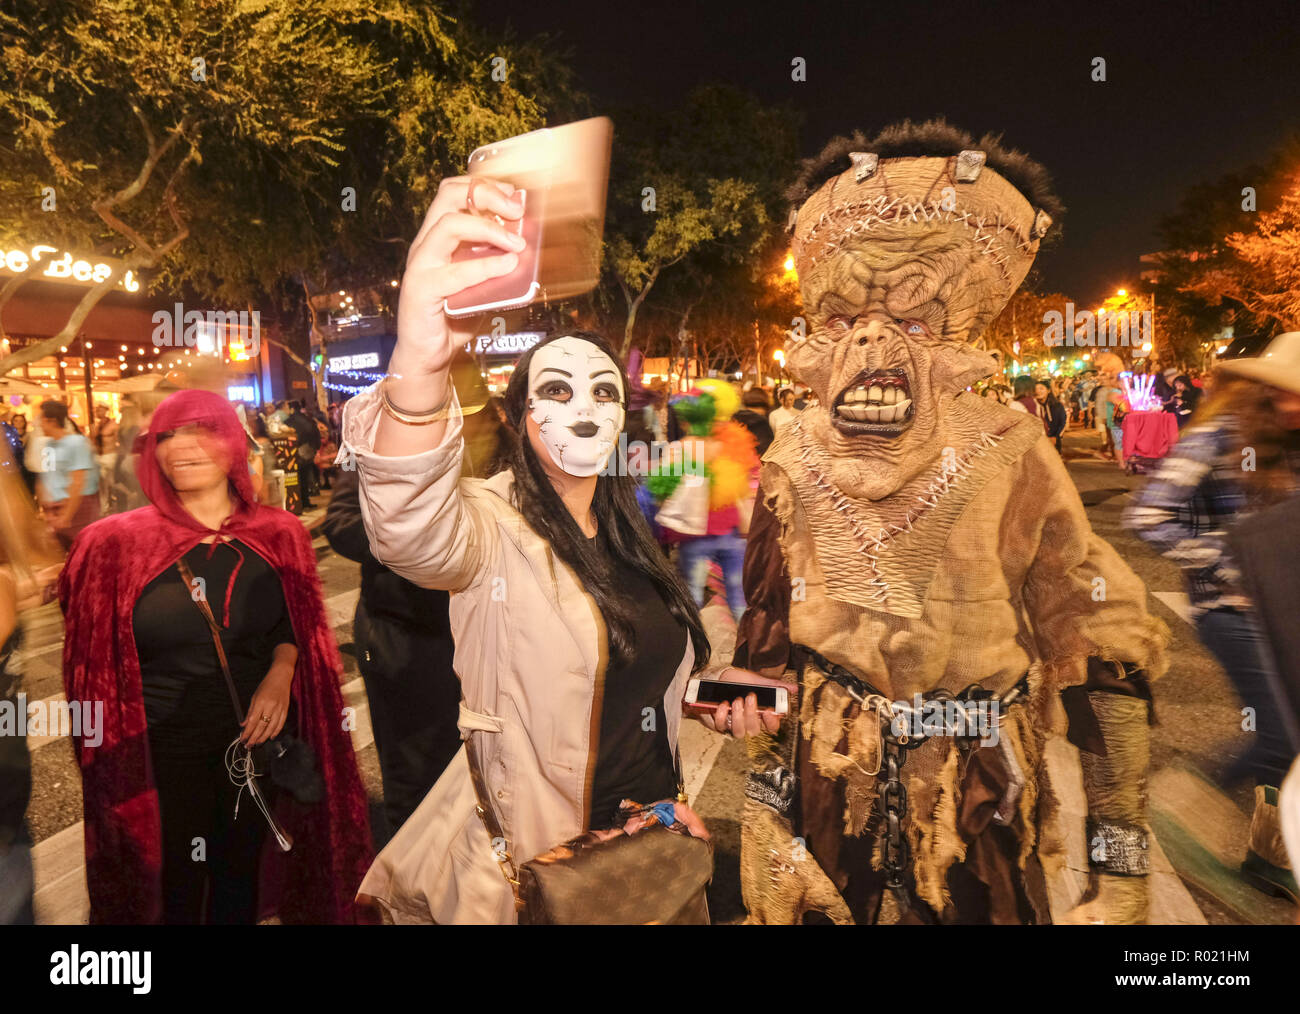 Hollywood California Halloween Parade High Resolution Stock Photography And Images Alamy